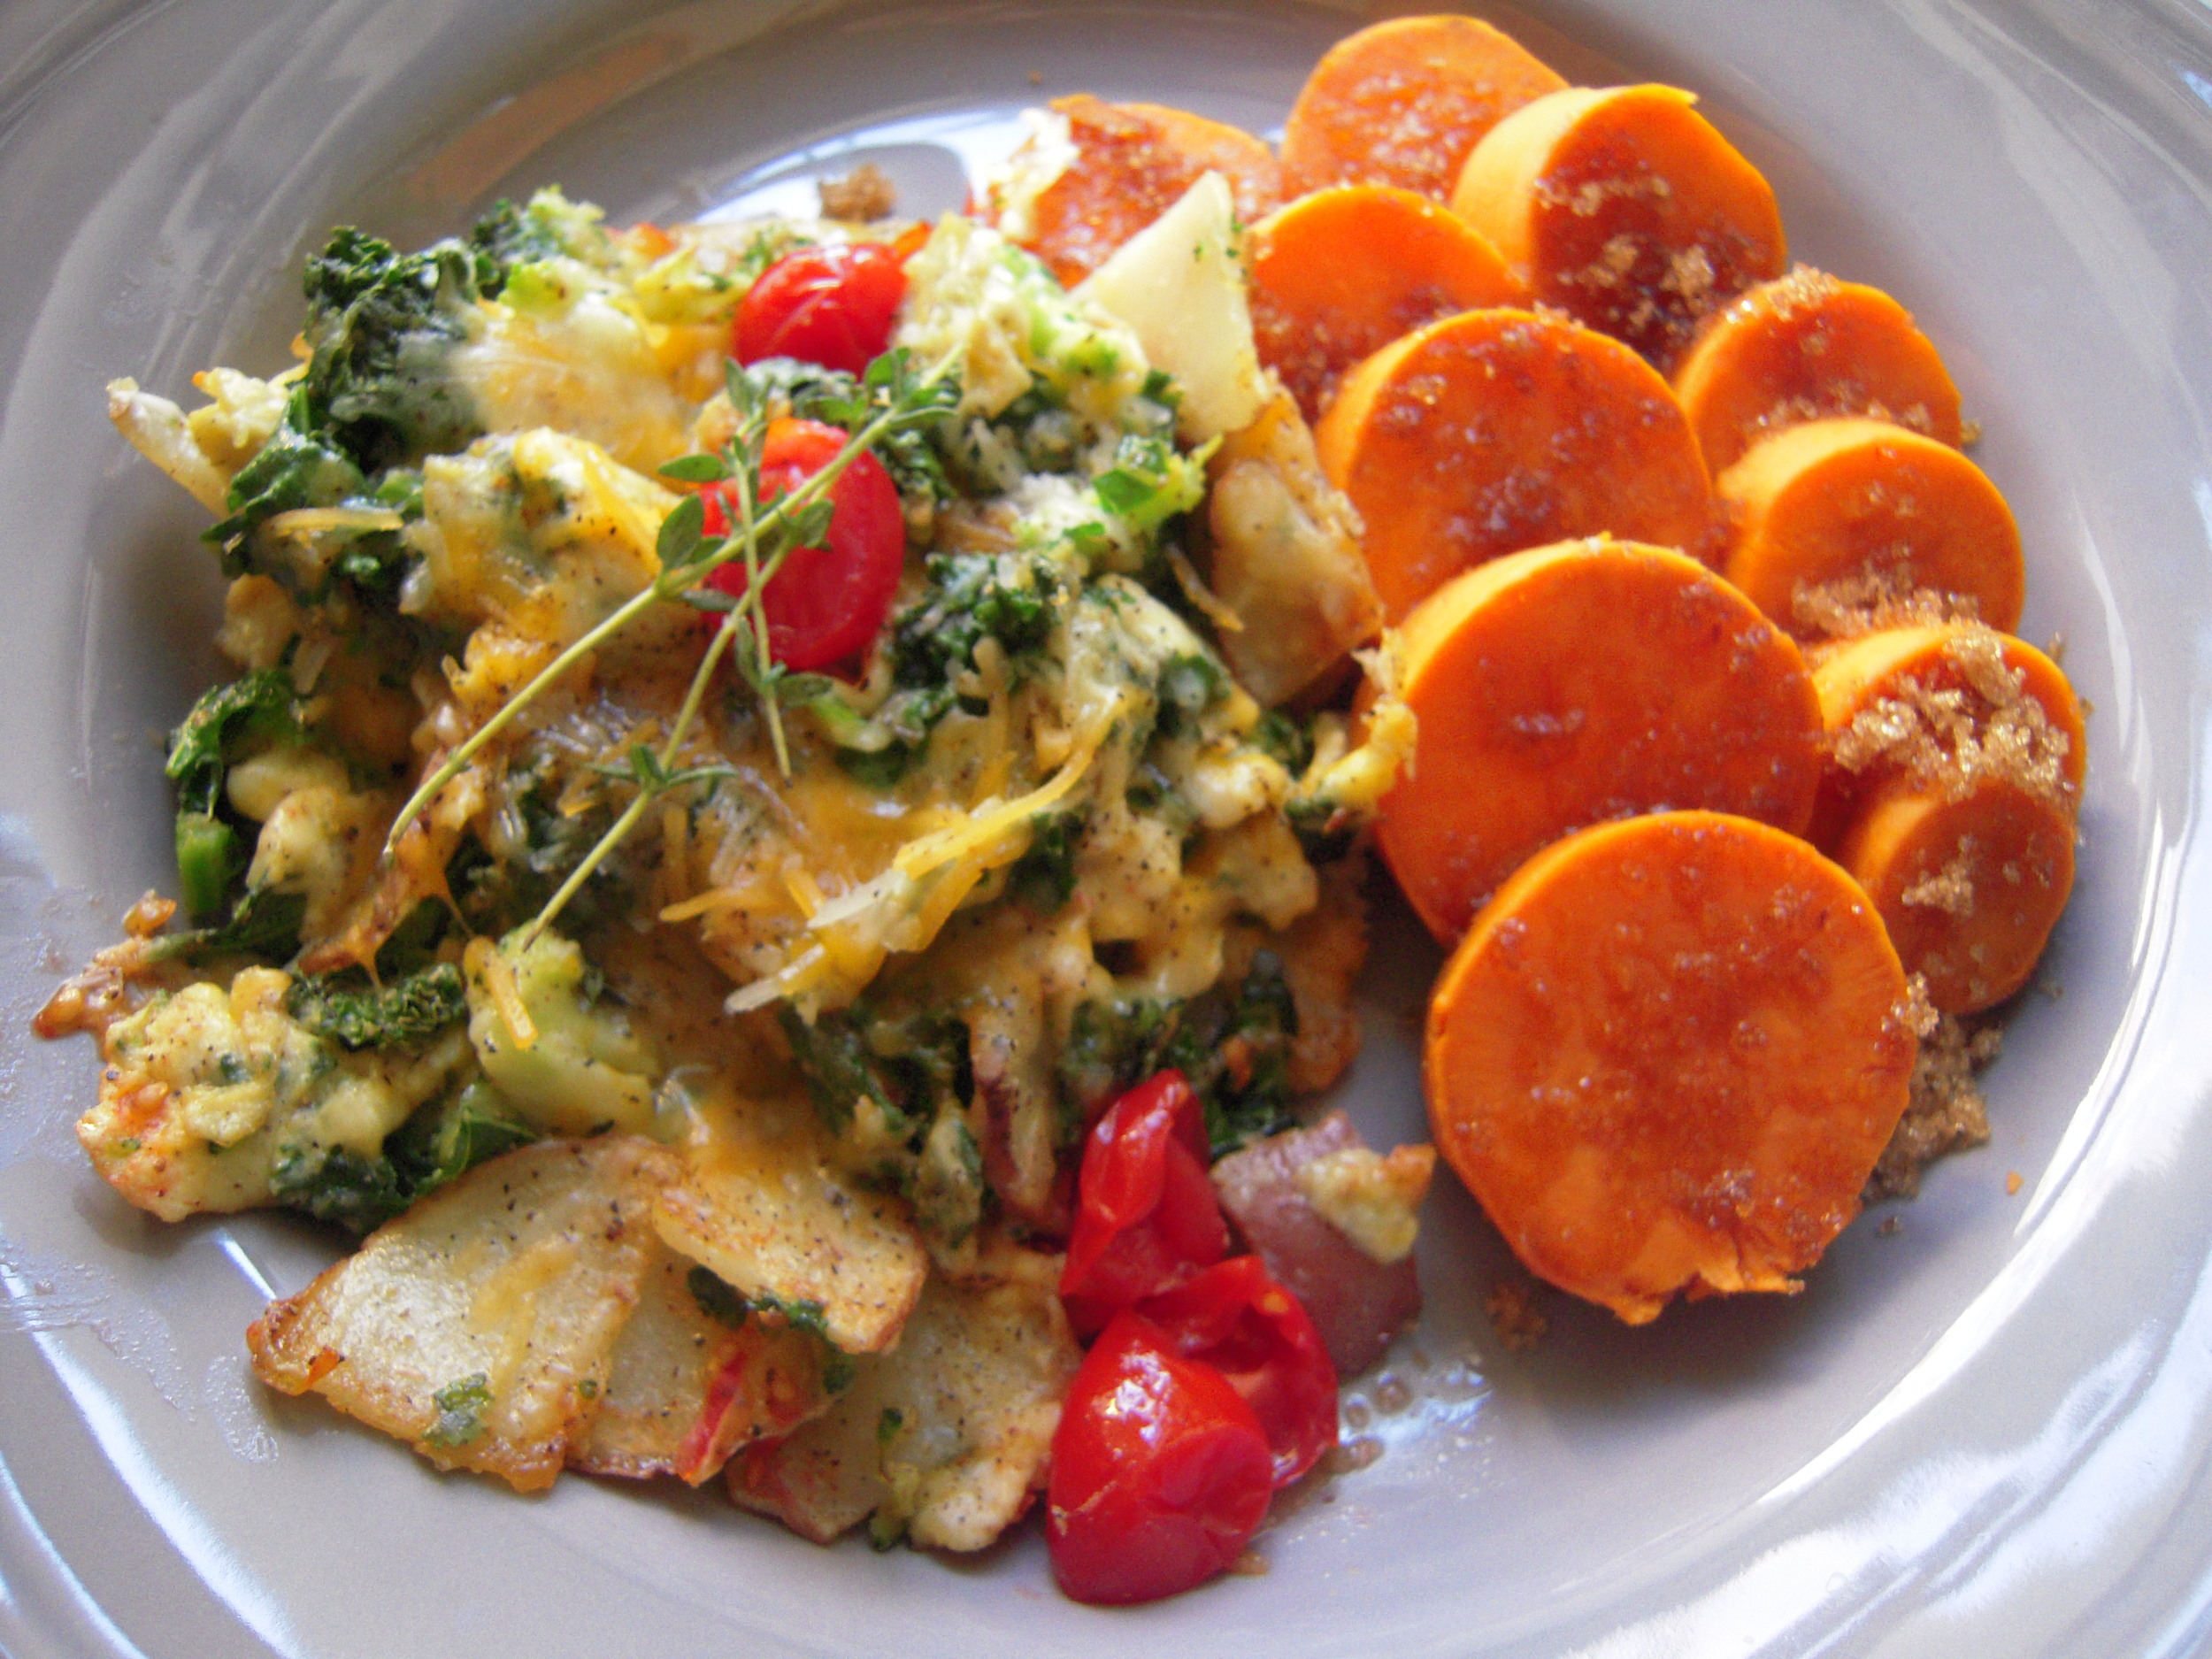 Yams and Garden Scramble.